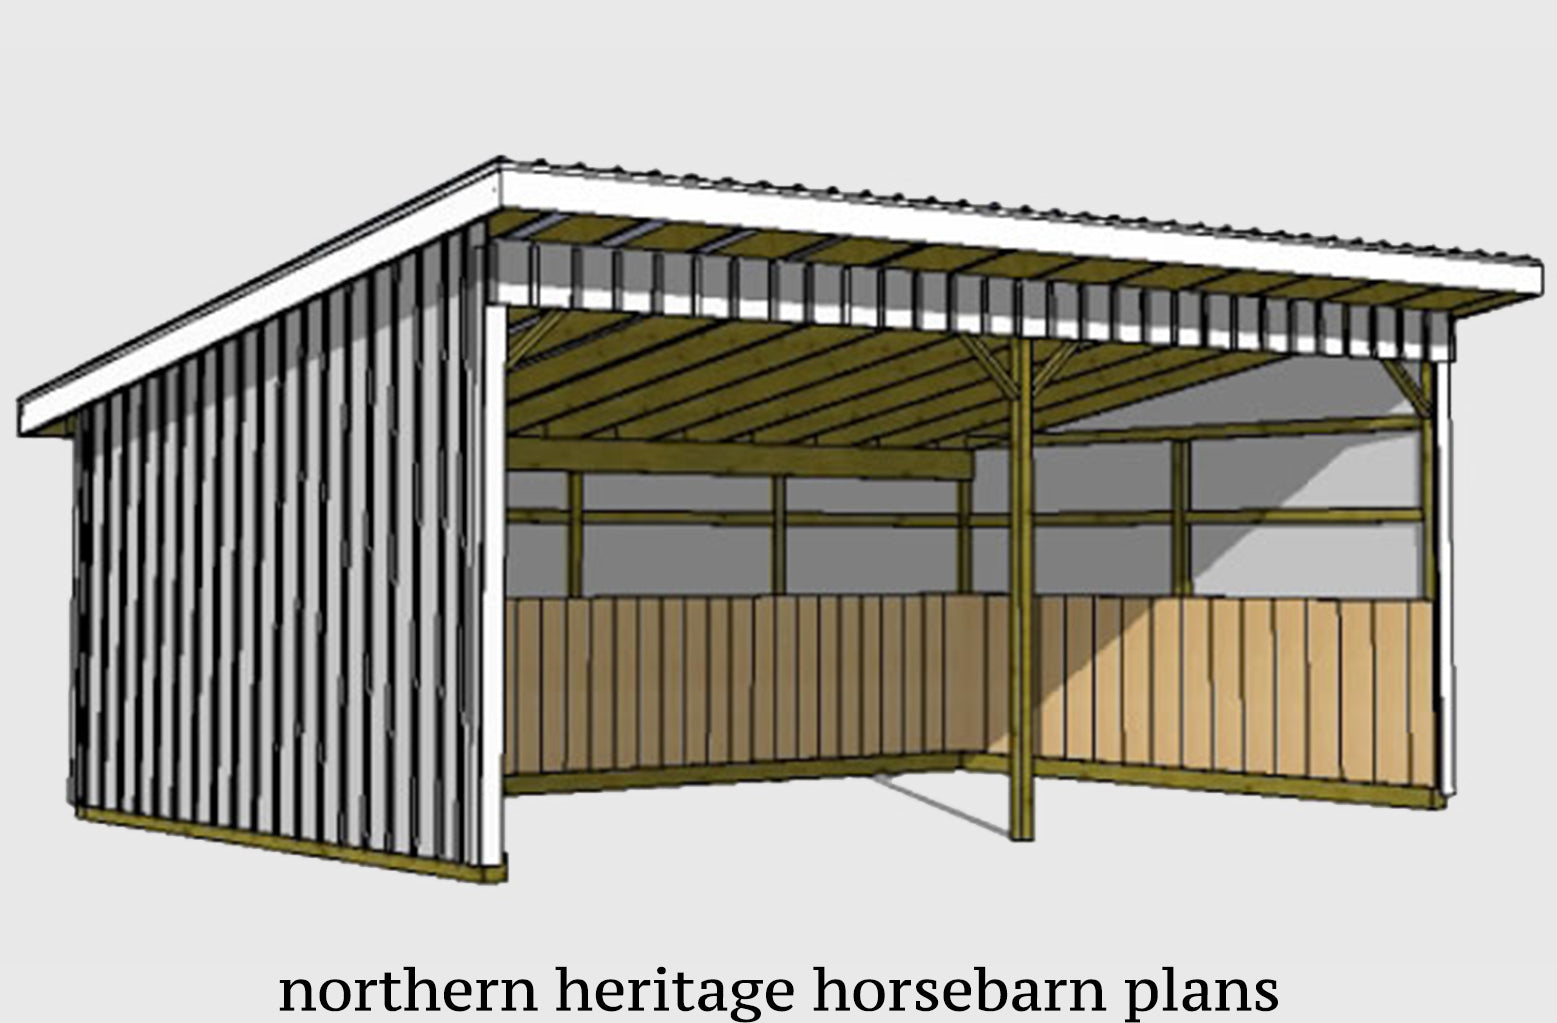 Ready To Build Pole Barn Plans Blueprints For Sale Northern Heritage Horsebarn Plans